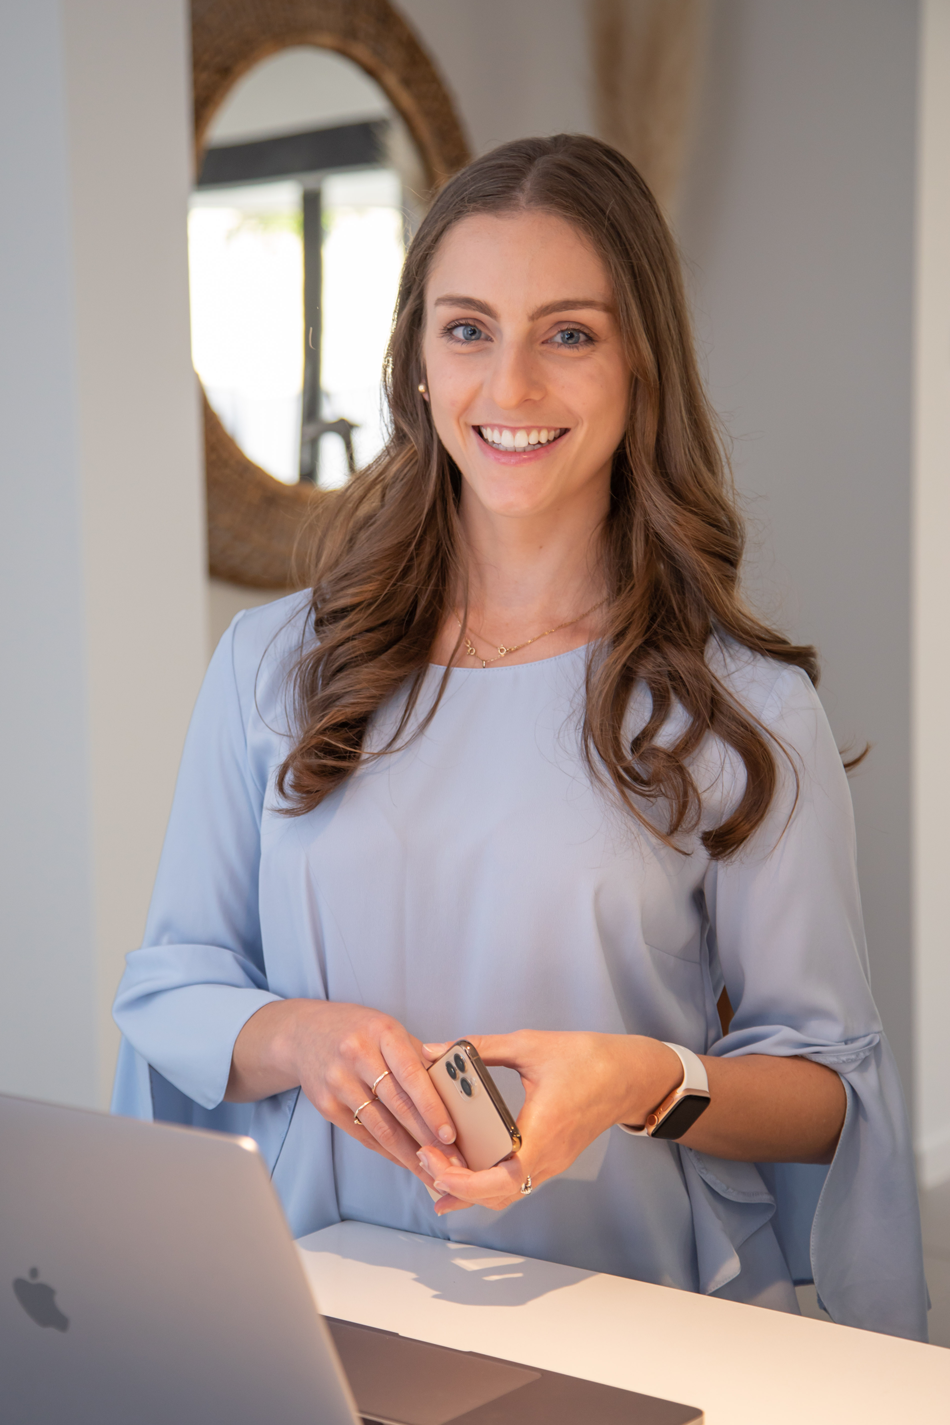 Crunchy Social Founder and Marketing Consultant, Claire